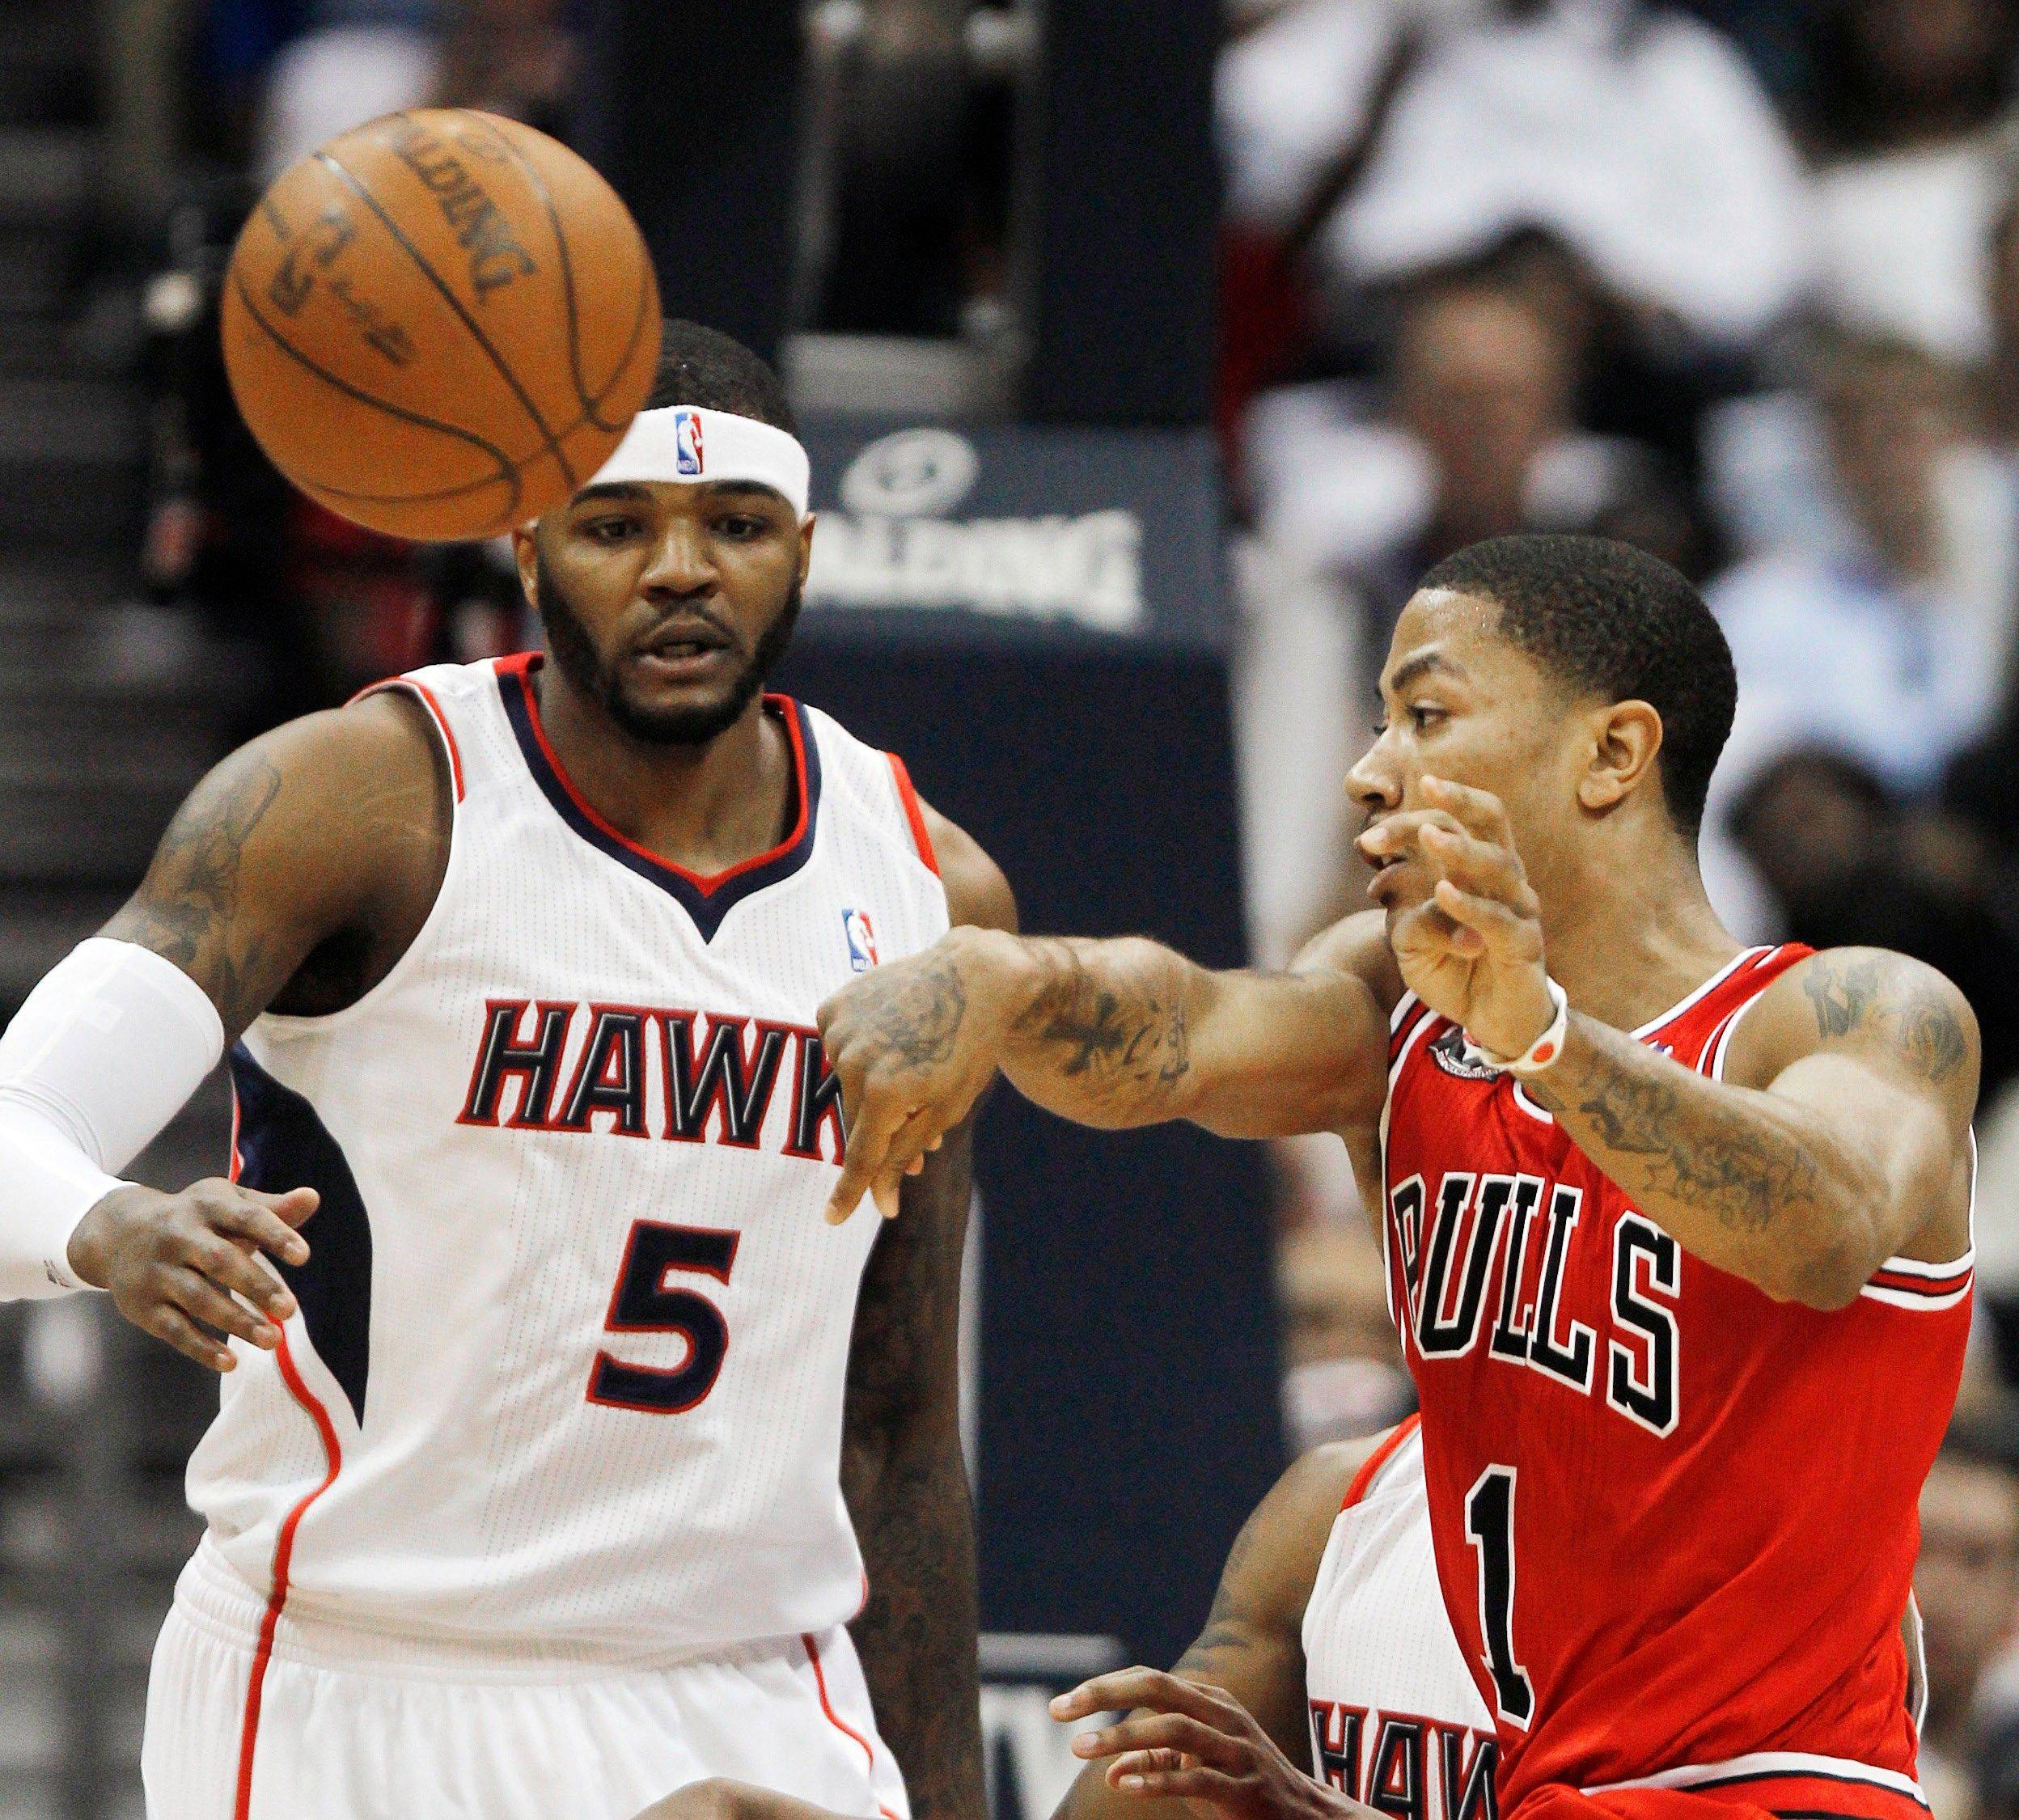 Derrick Rose (1) passes the ball as Atlanta Hawks power forward Josh Smith (5) looks on in the first quarter of Game 4.